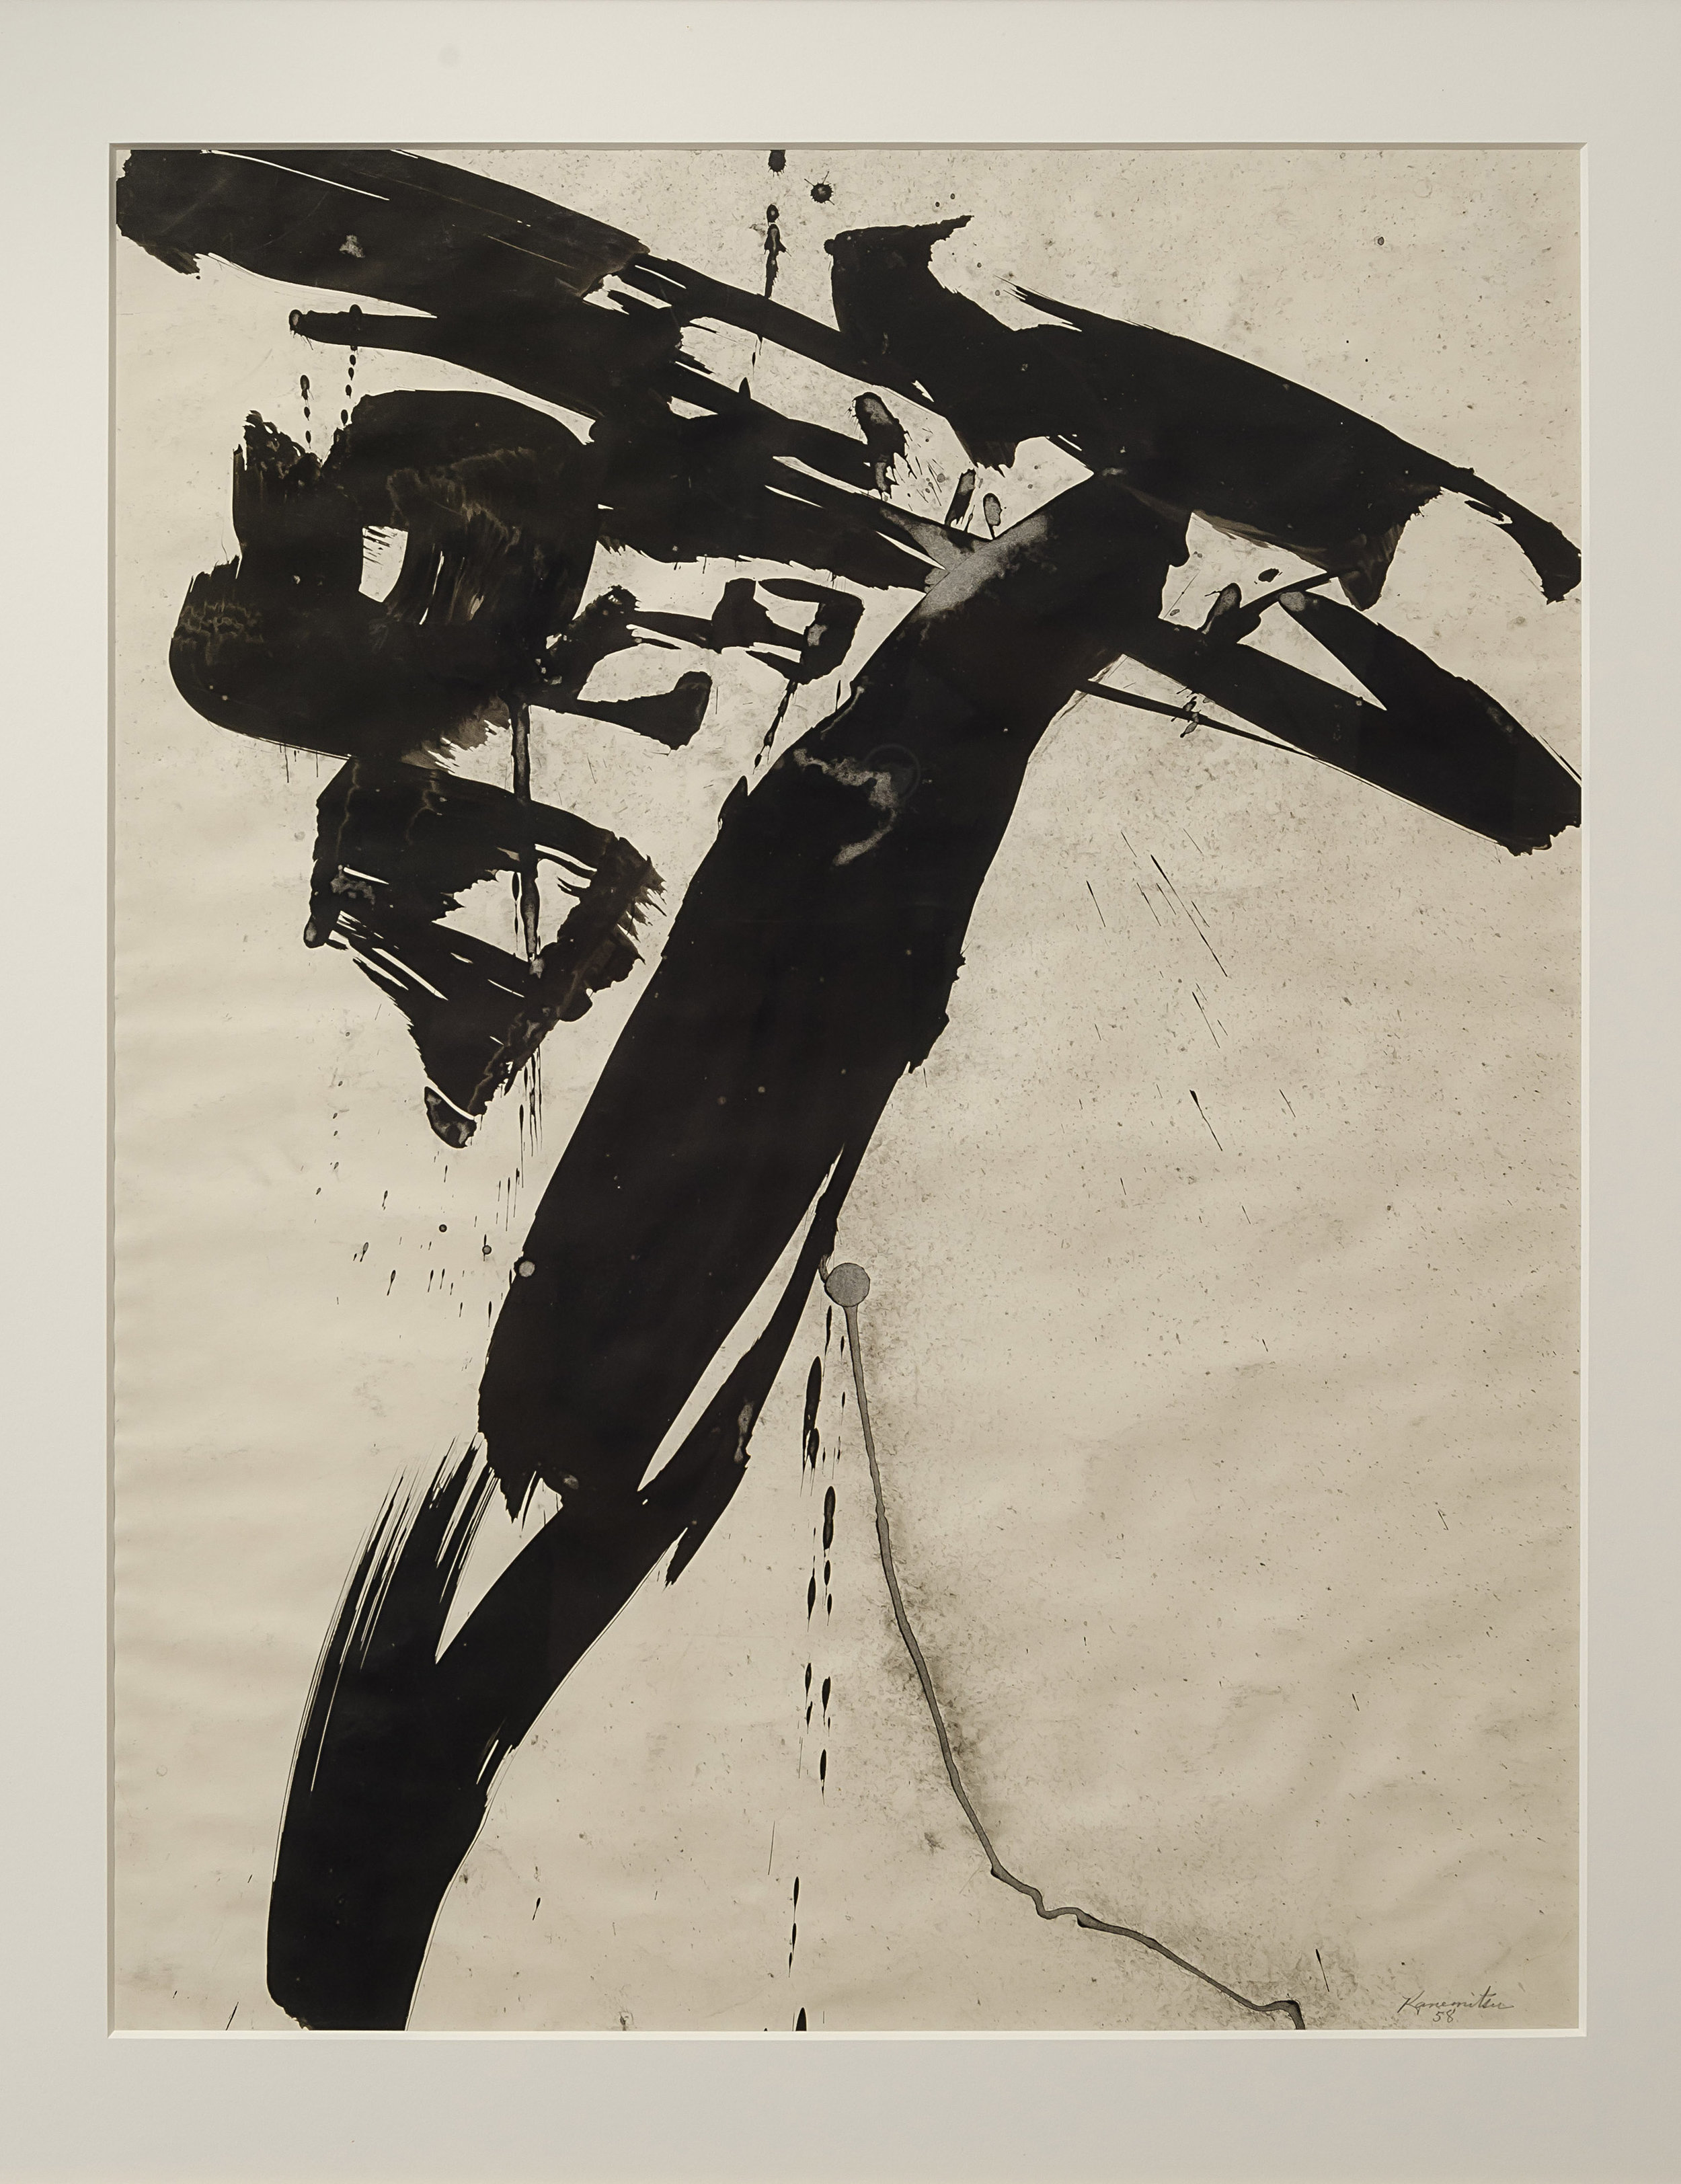 Cat   1958  sumi ink on paper  25 x 19 5/8 inches, 63.5 x 49.8 centimeters